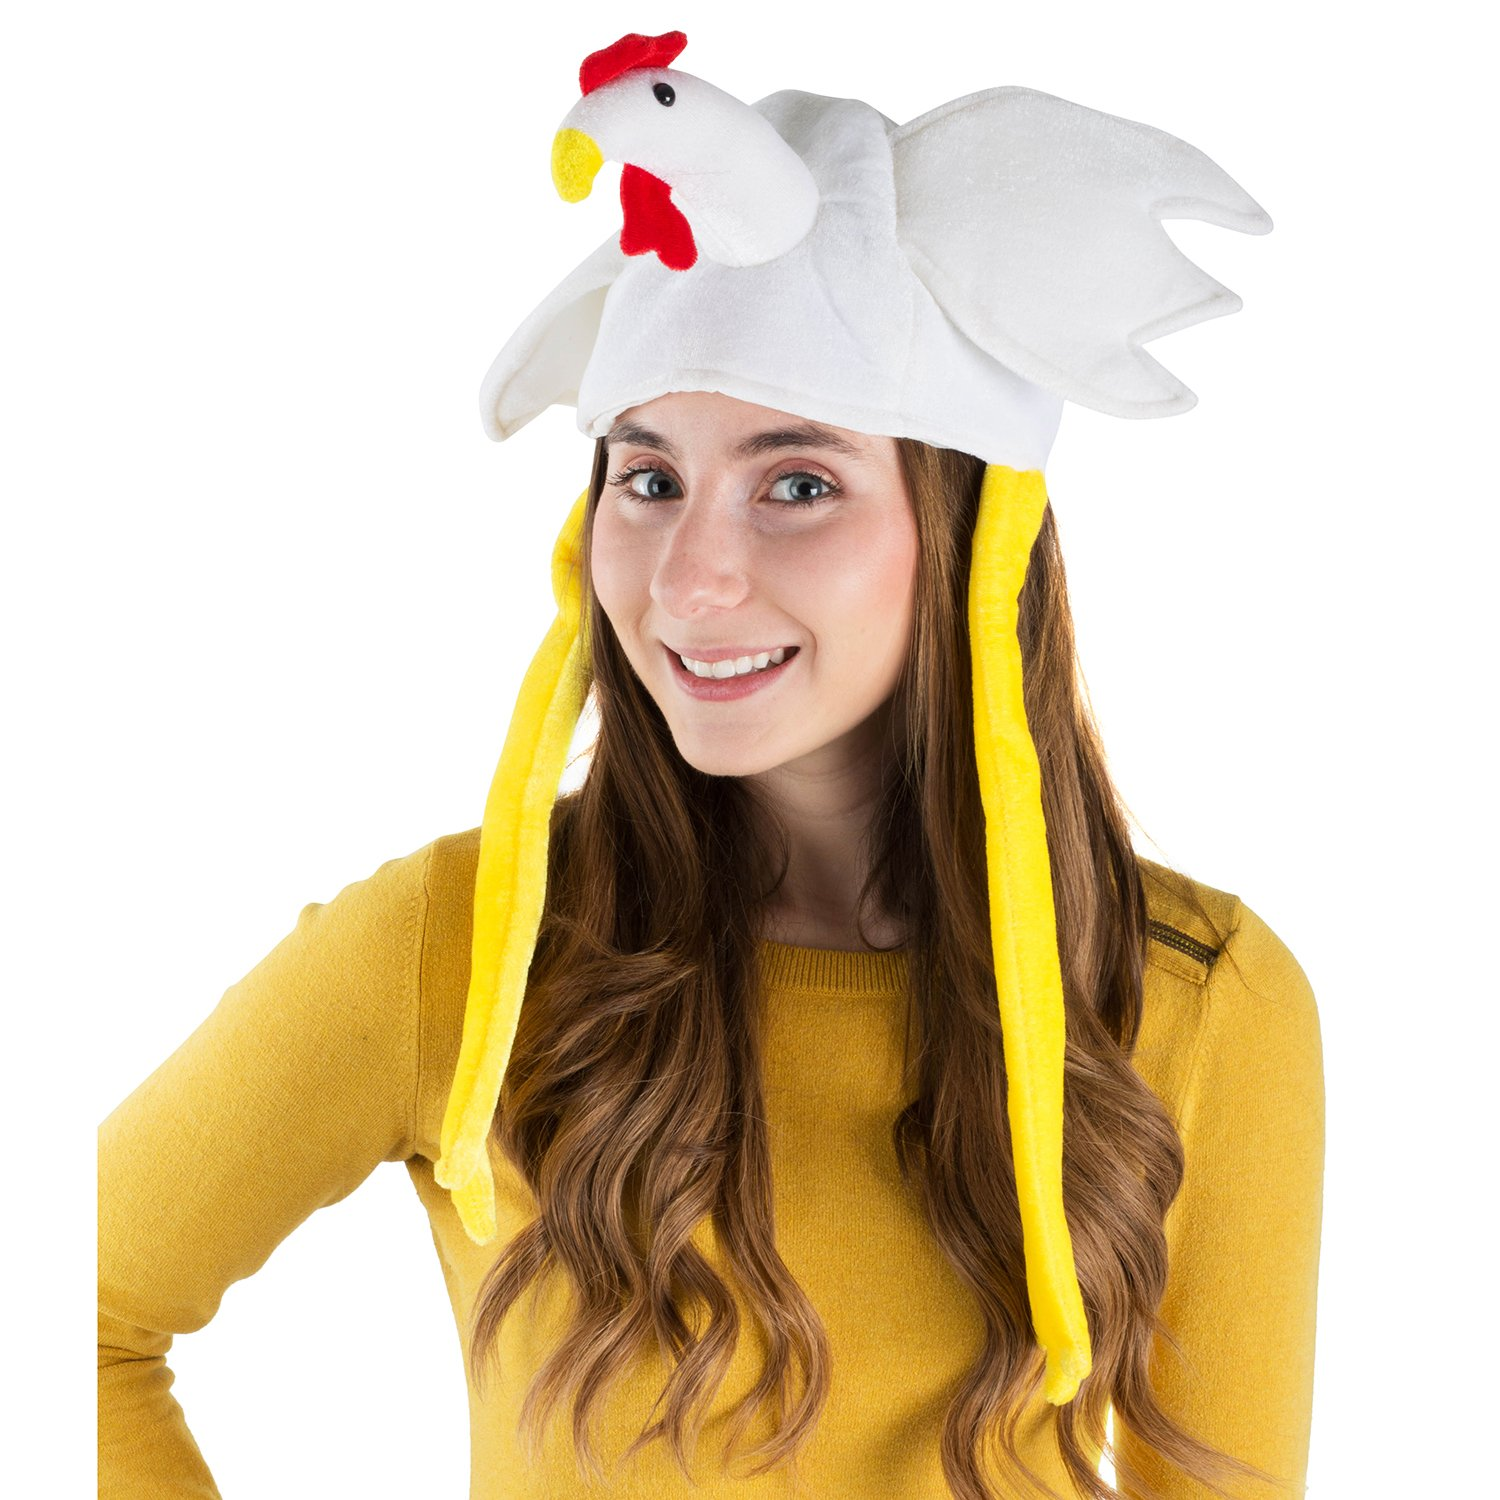 8035ad94b26 Amazon.com  Chicken Hat - Rooster Hat - Farm Costumes - Novelty Hats - Farm  Animal Costumes by Funny Party Hats  Clothing